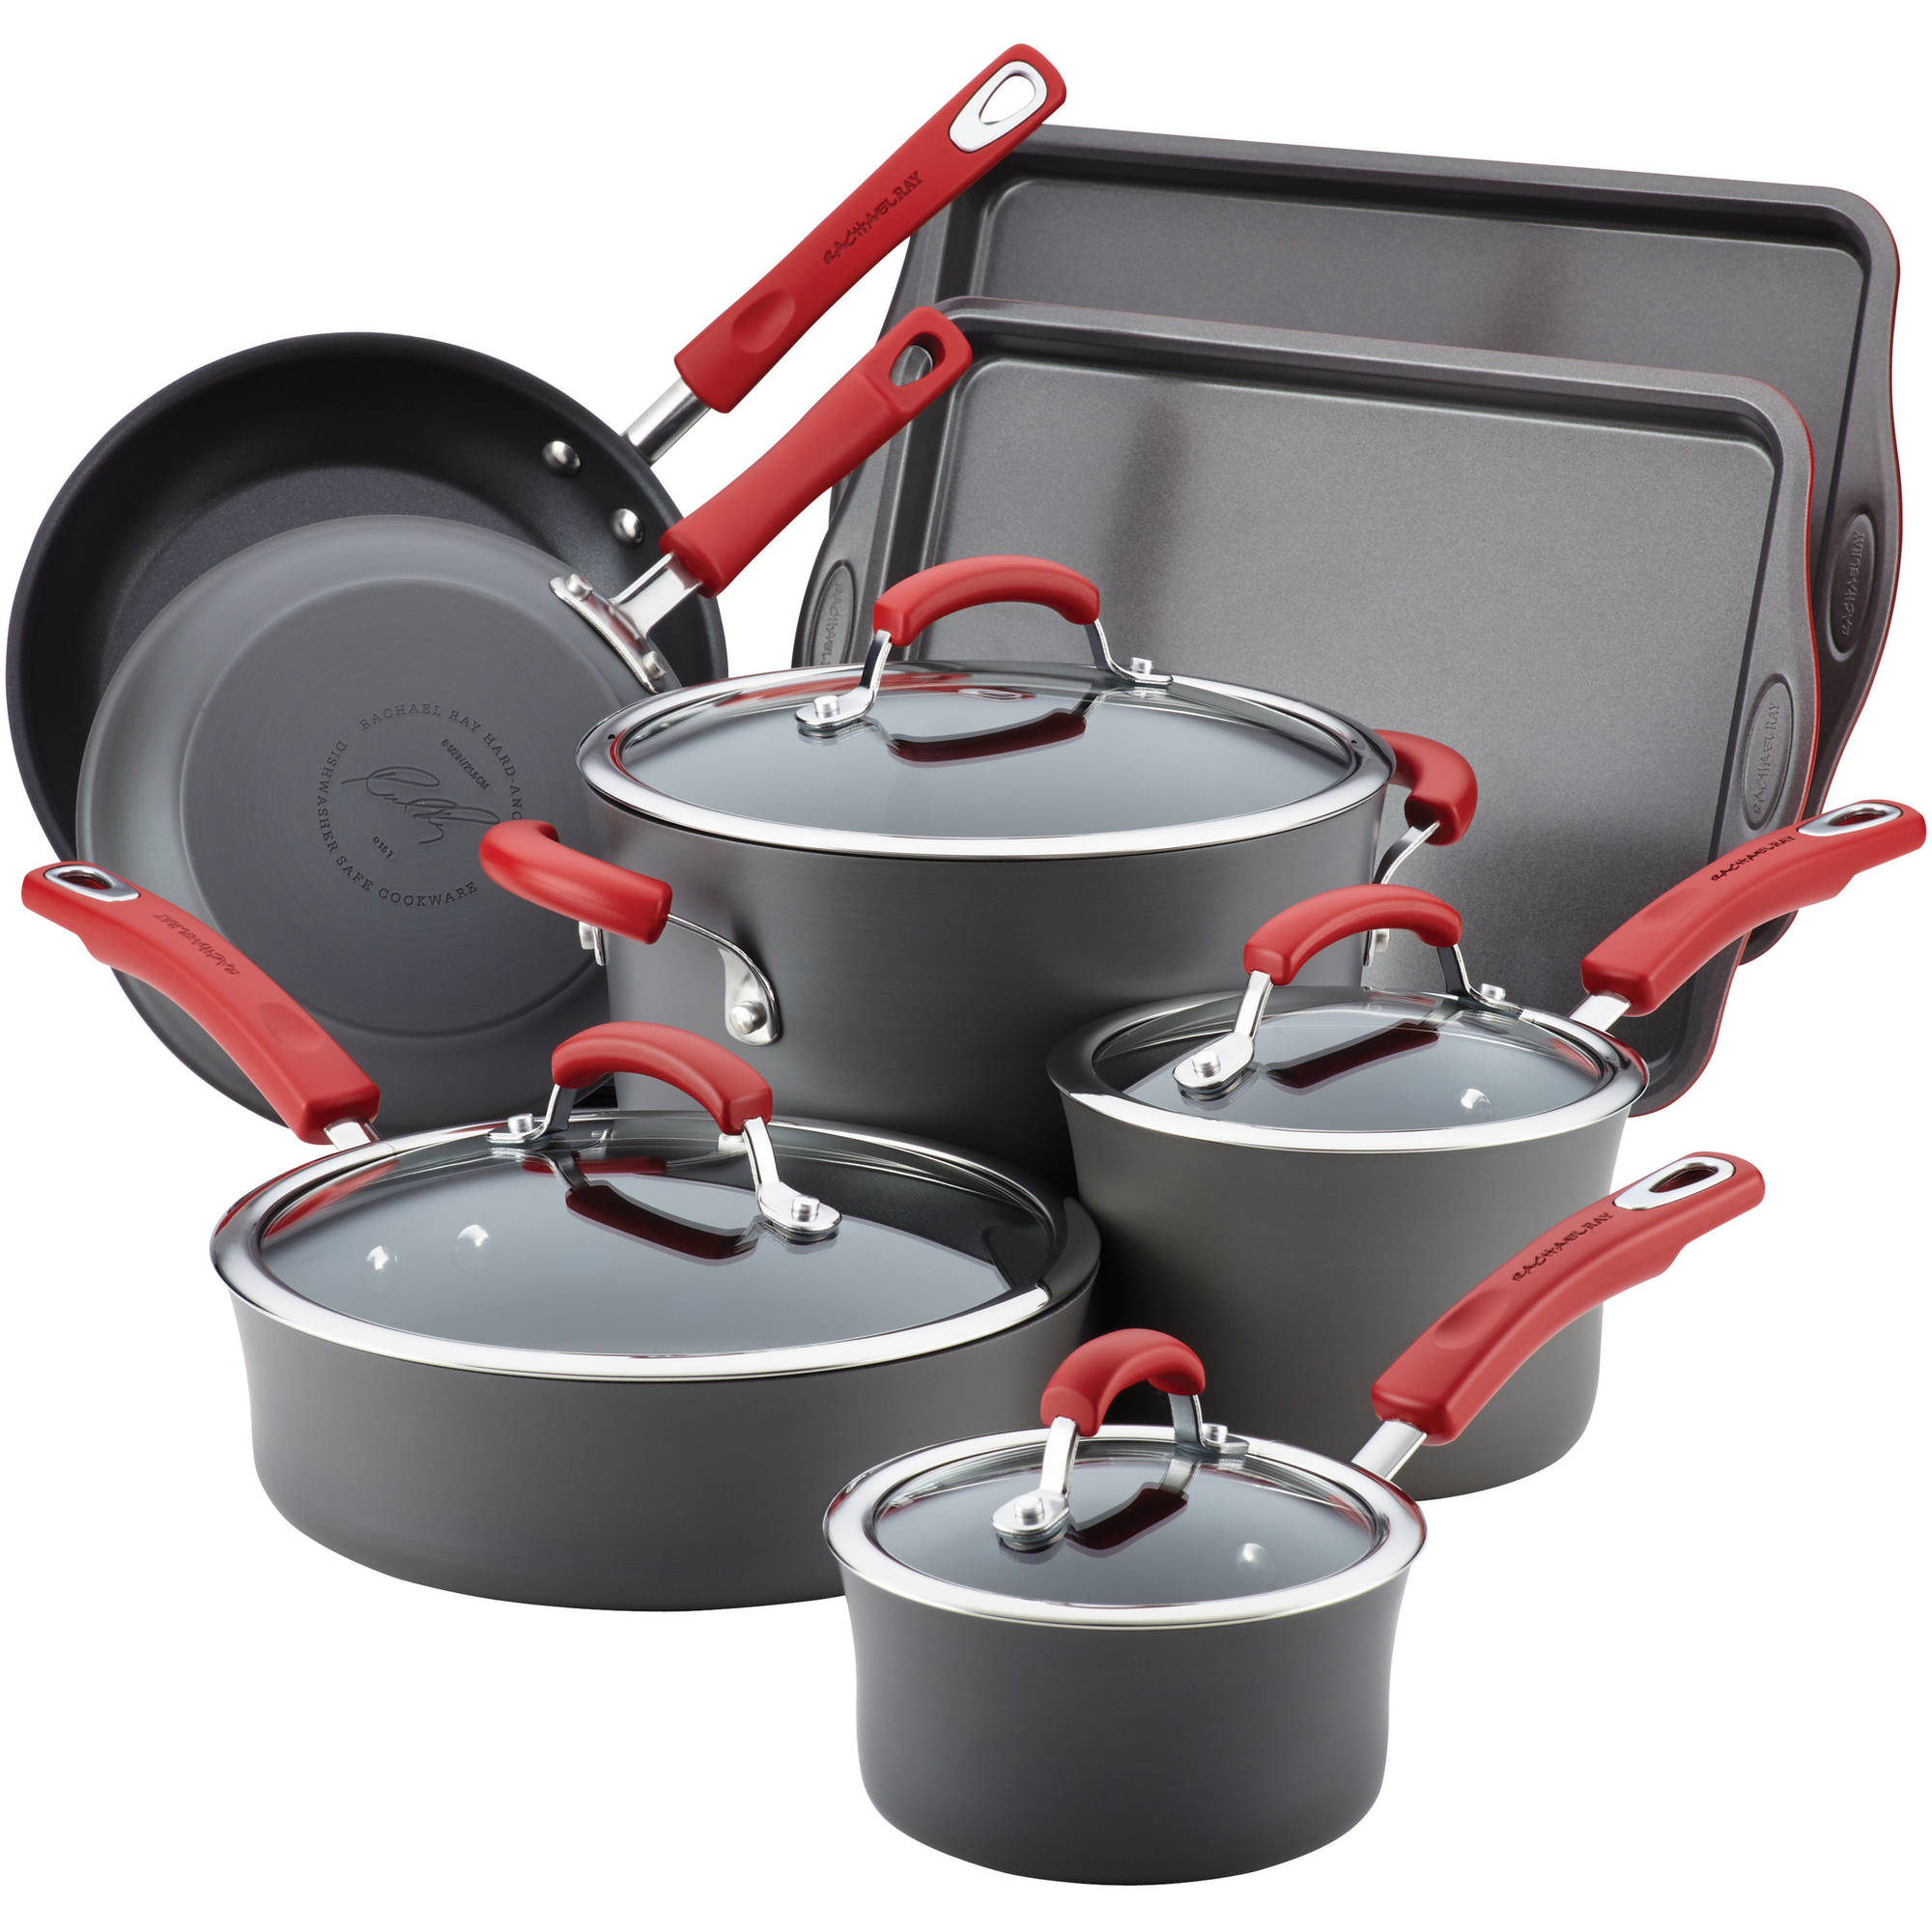 Rachael Ray Hard Anodized Nonstick 12 Piece Cookware Set